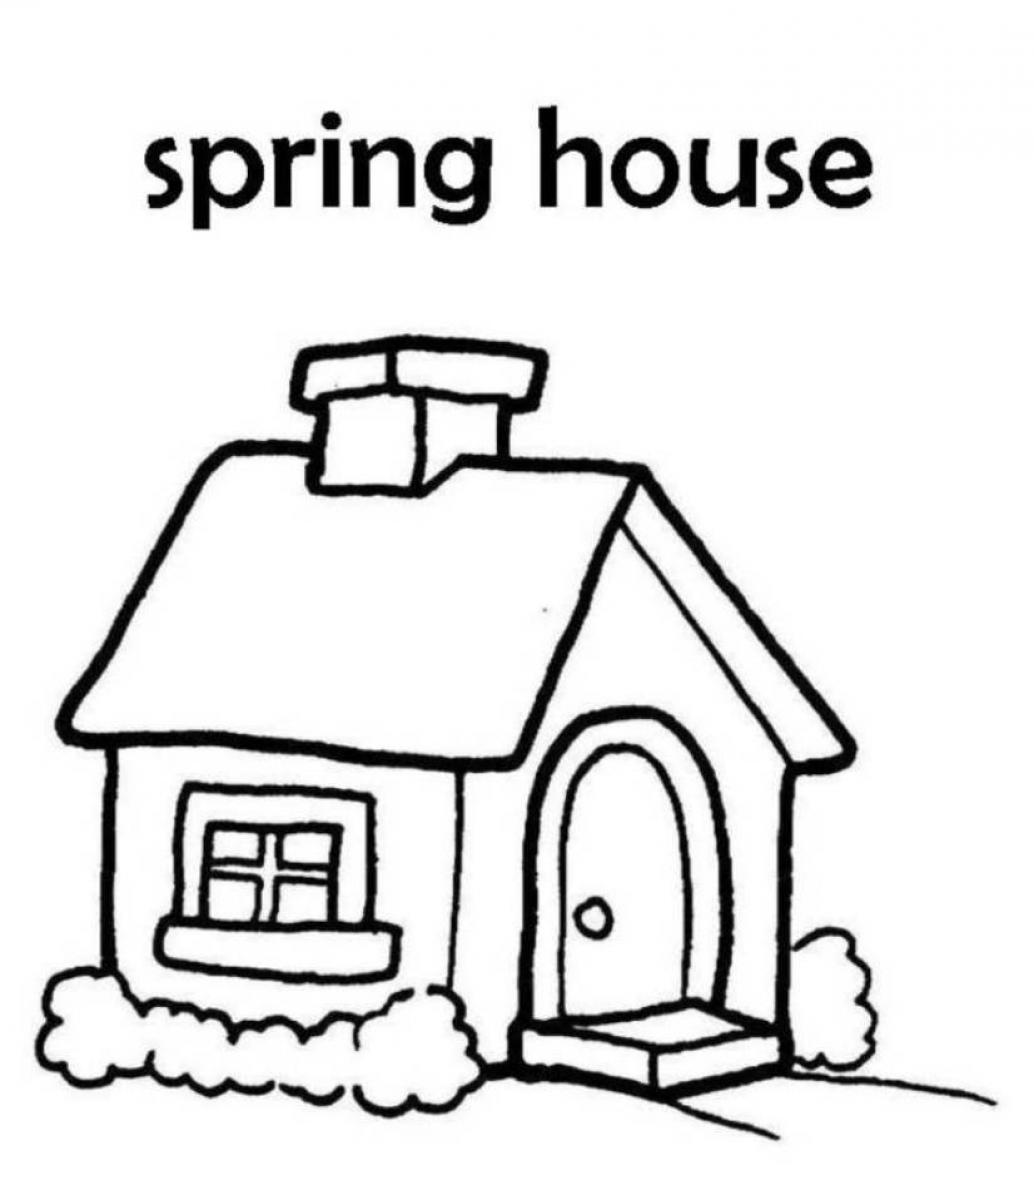 coloring house pages house coloring pages to download and print for free house coloring pages